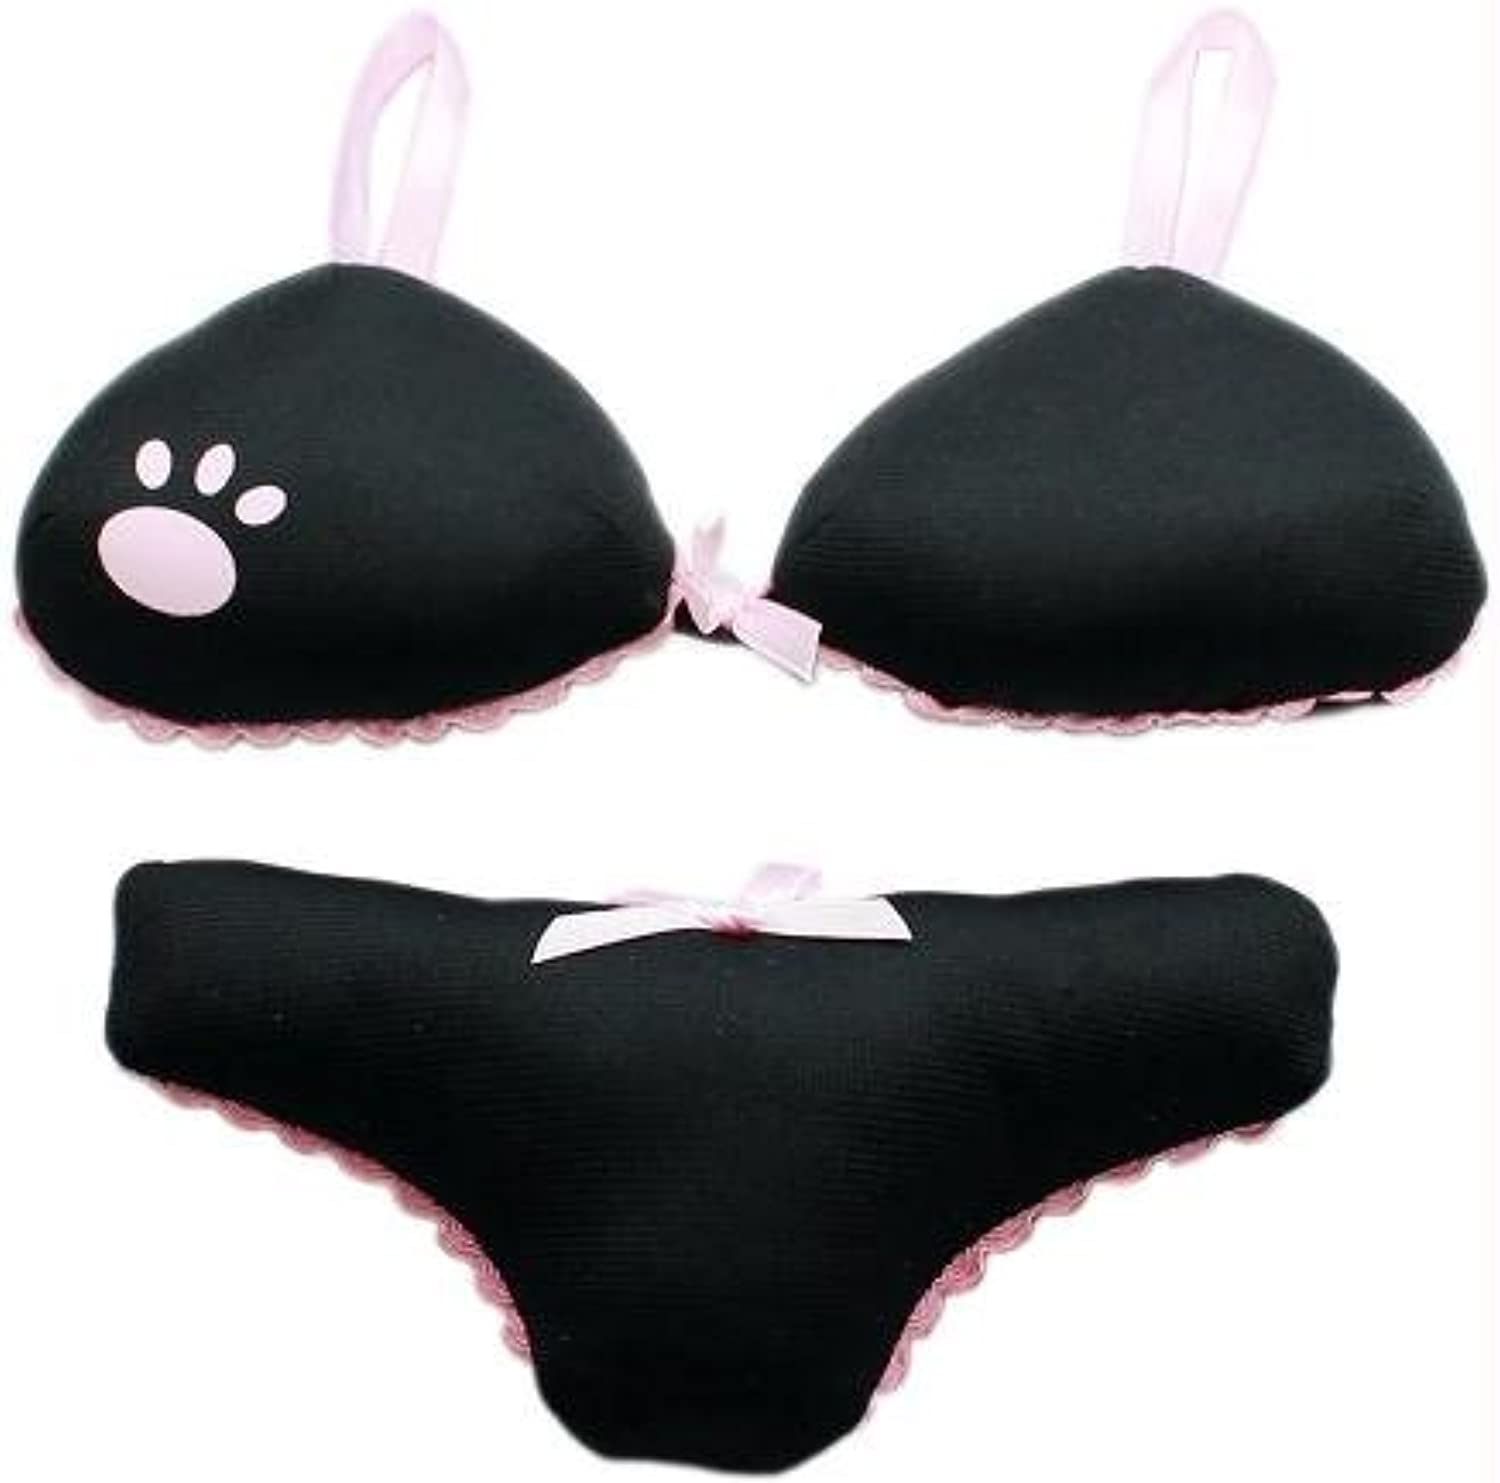 Big Girl Panties and Bra Set Squeaky Dog Toys Black by Mirage Pet Products